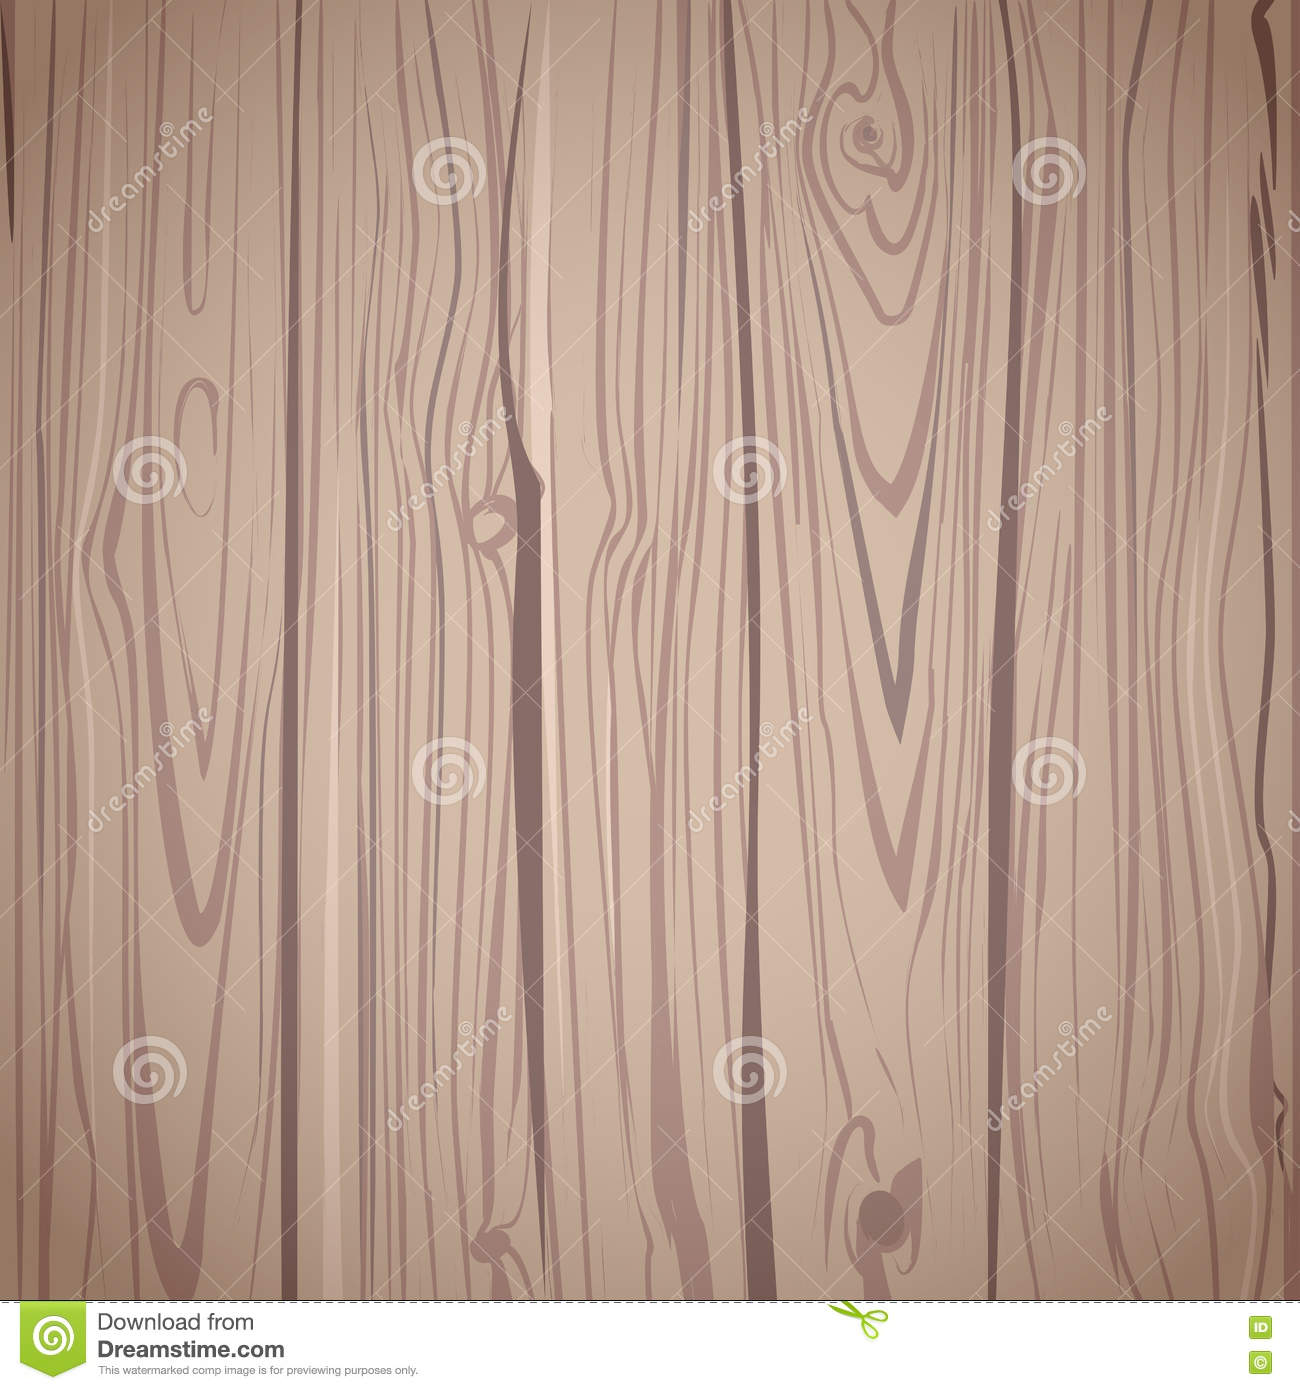 dark wood floor pattern. Wood texture top view  Natural dark wooden background Brown wood floor Vector illustration Texture Top View Dark Wooden Background